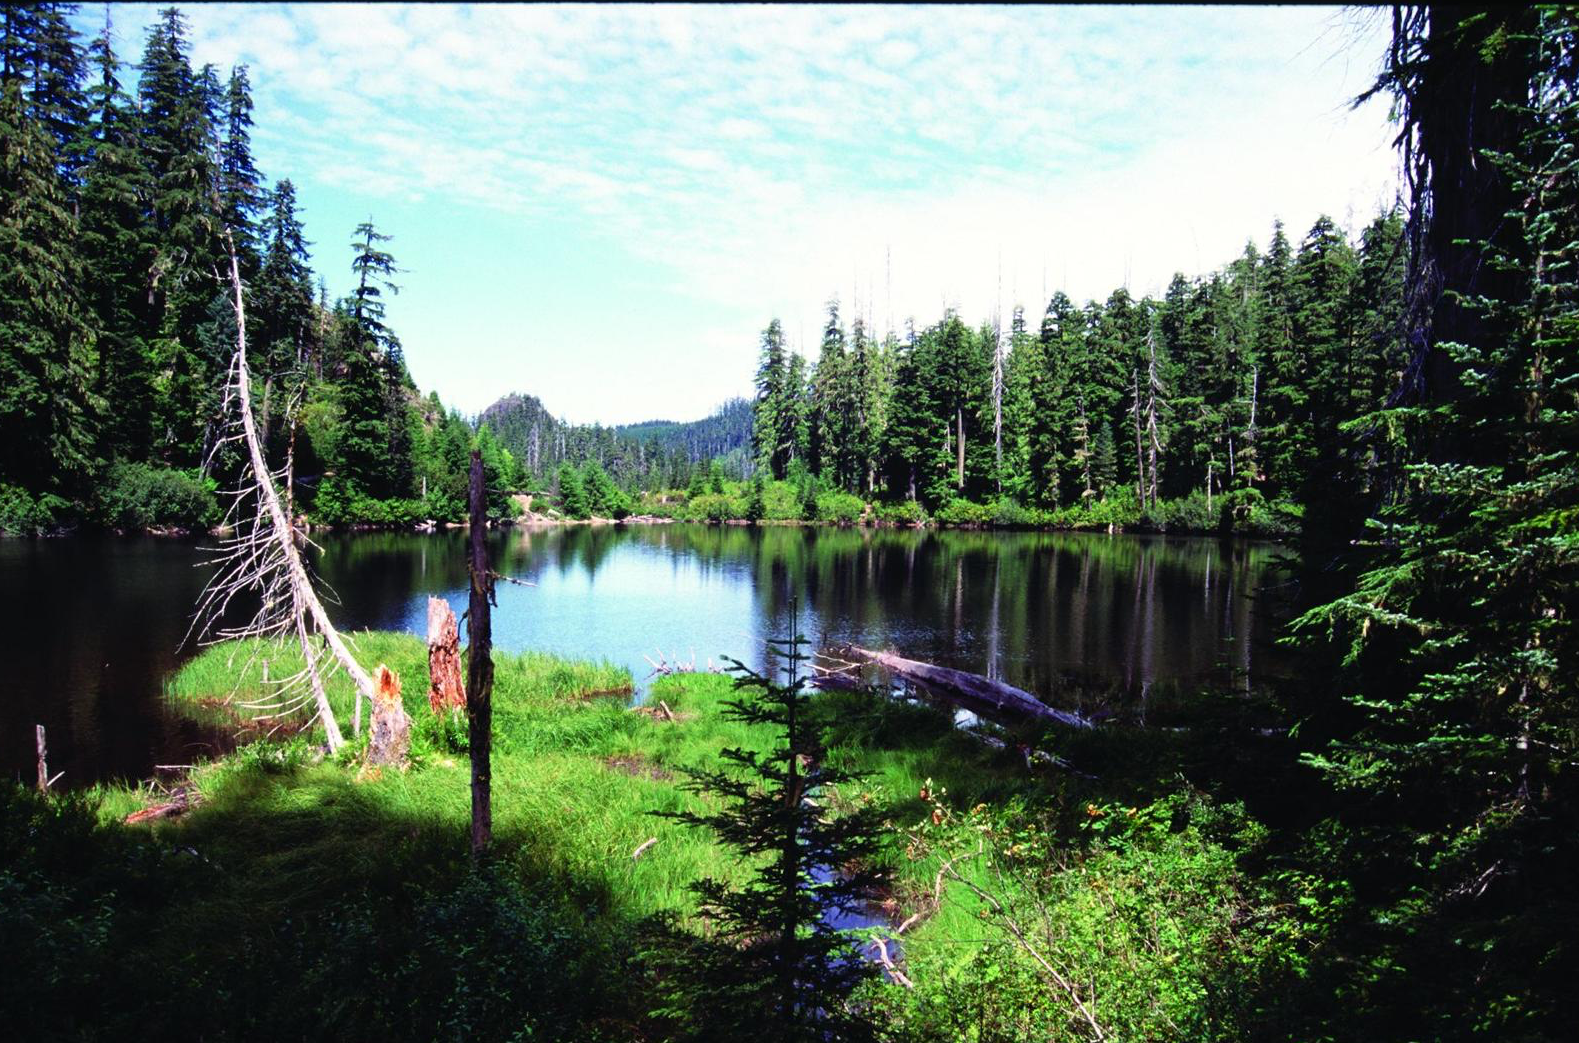 Fig. 1.  Crabtree Lake in Crabtree Valley, which contains some of the oldest trees in Oregon, is in the proposed Douglas Fir National Monument, located in Oregon's Cascade Mountains.  Source: David Stone, Wildlands Photography. Previously appeared in   Oregon Wild: Endangered Forest Wilderness     (Timber Press, 2004), by the author.